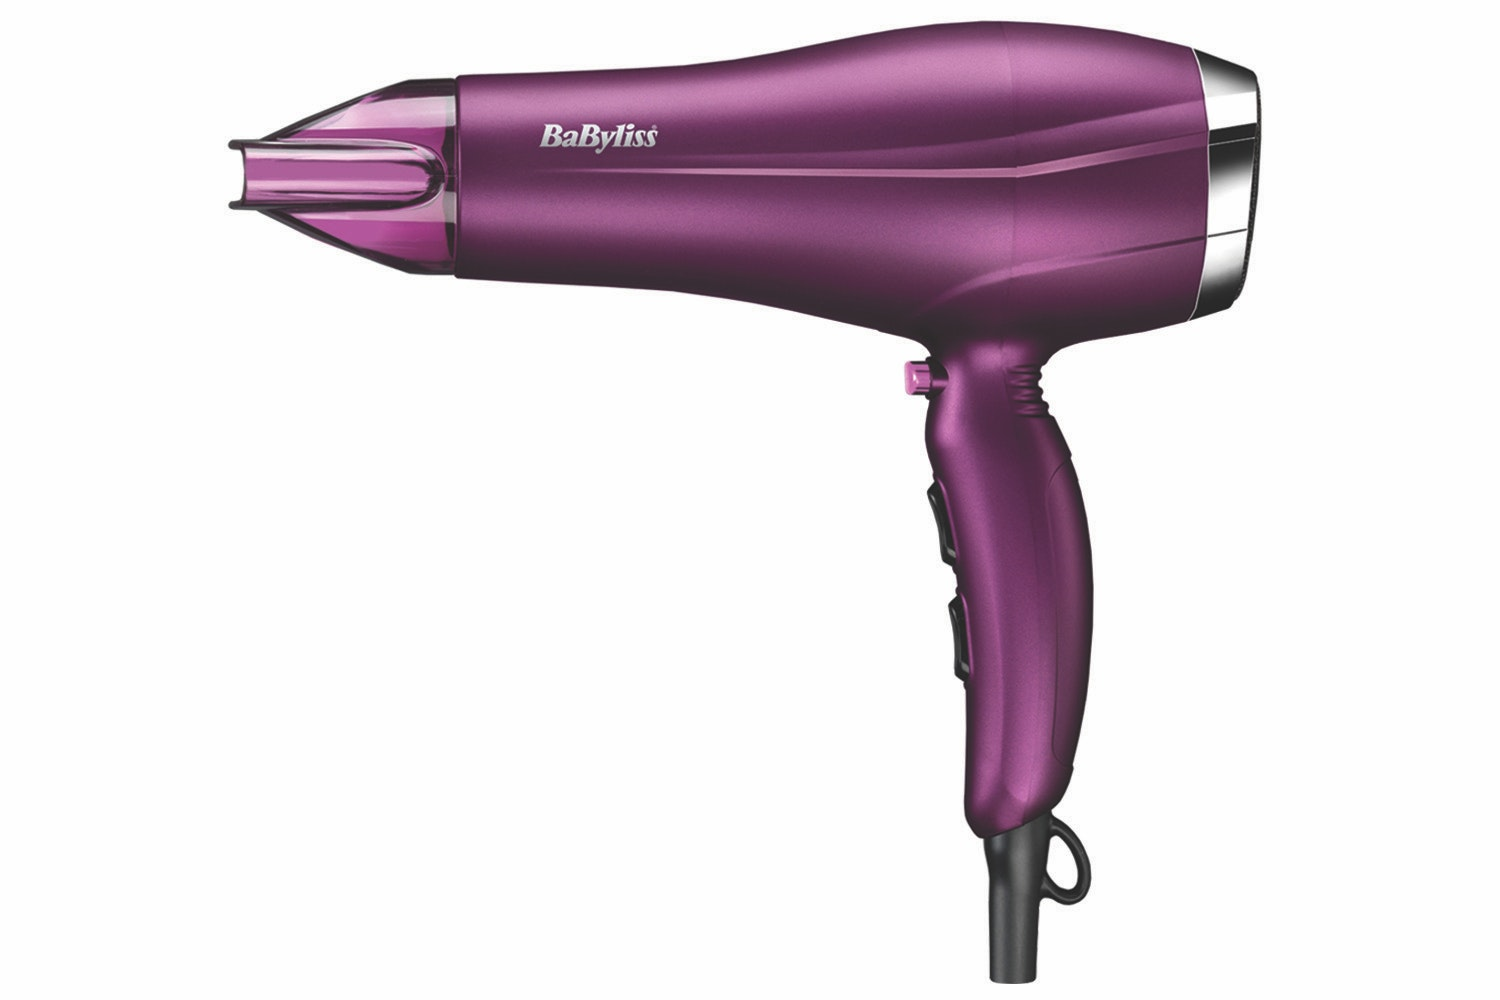 Babyliss Velvet Orchid Hair Dryer | 5513U